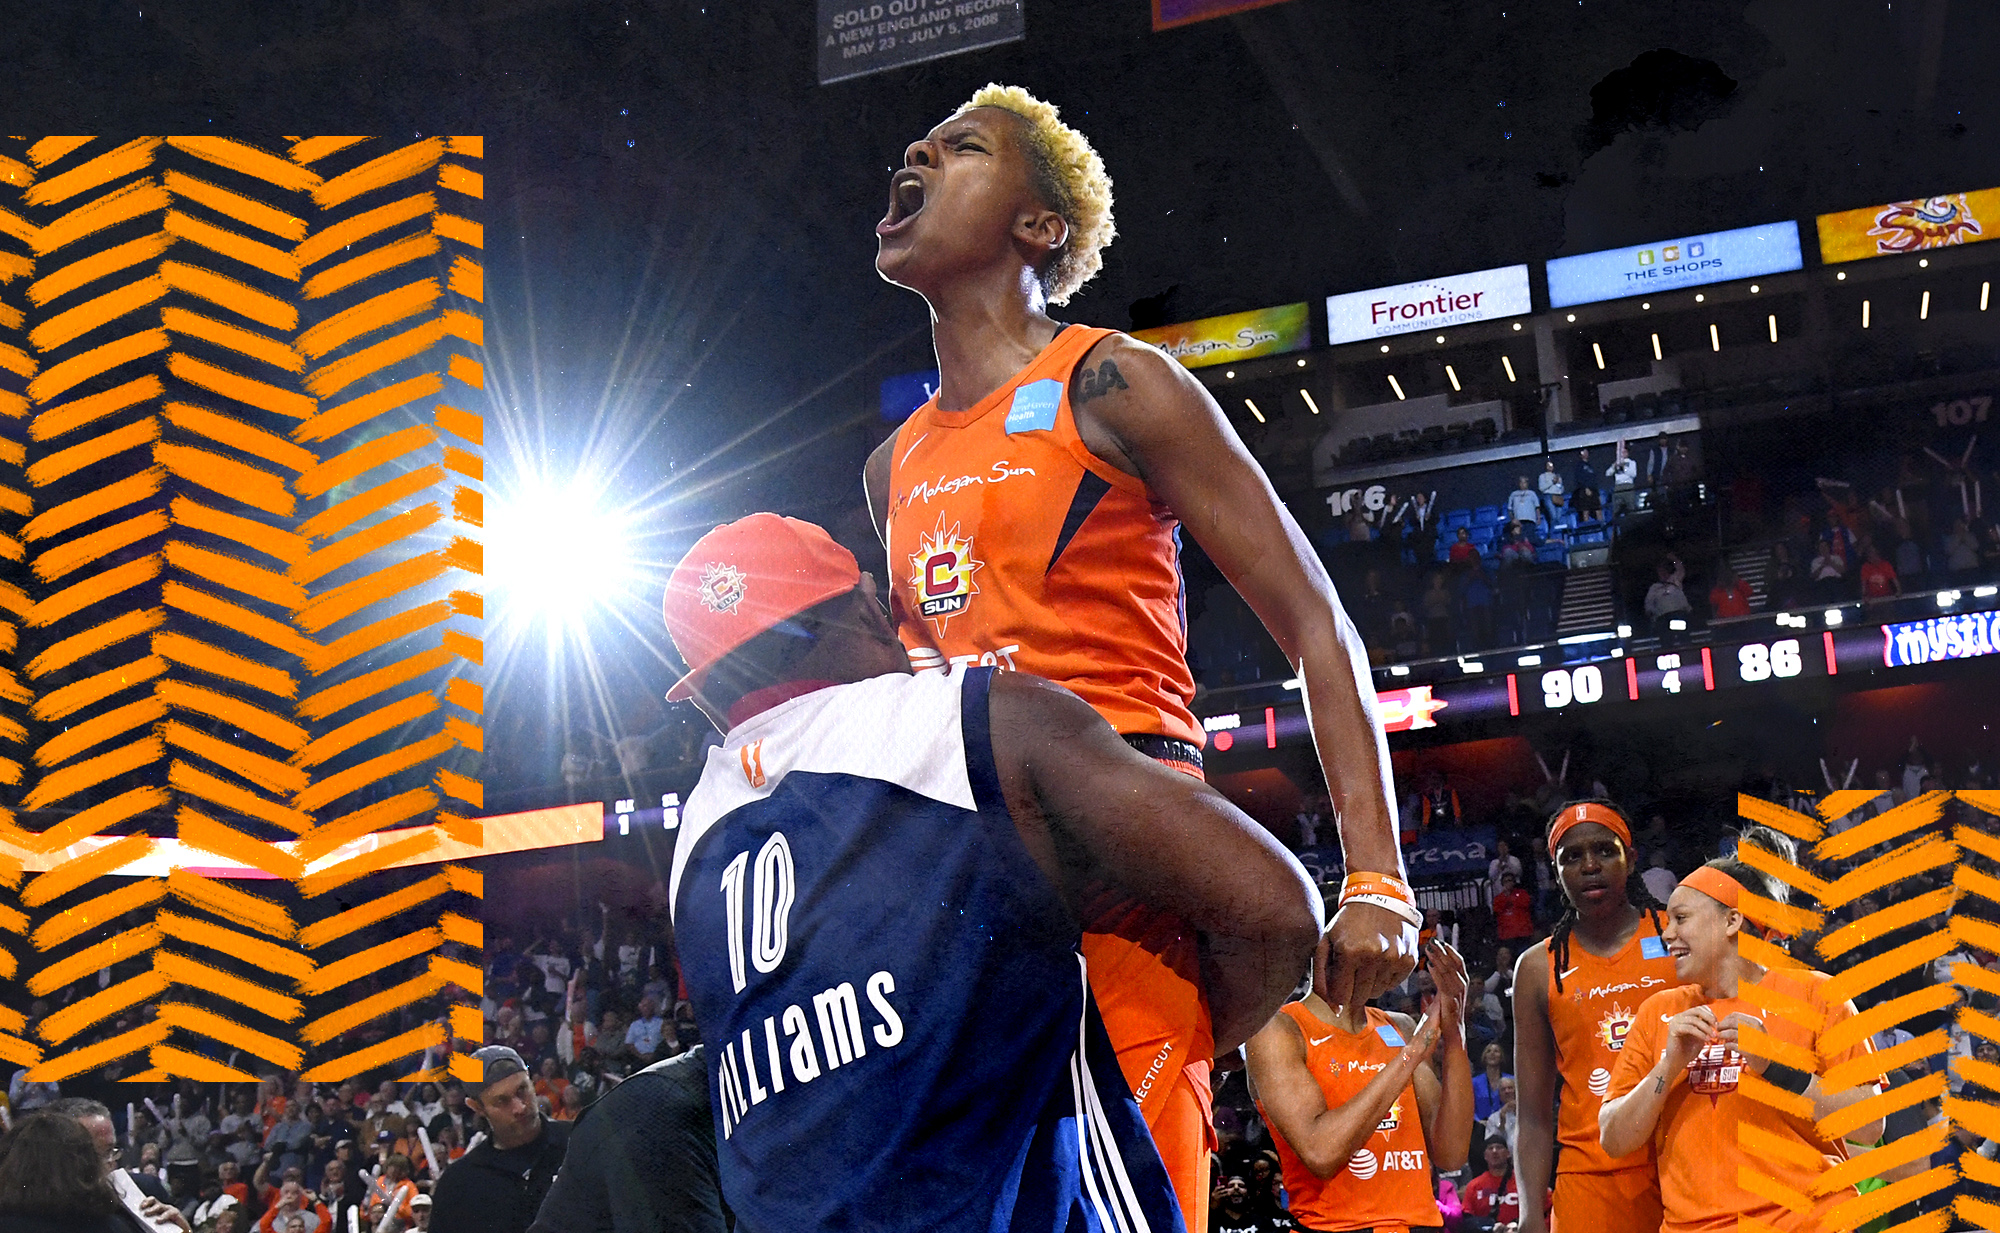 Sun star guard Courtney Williams is lifted up by her father after winning Game 4 of the WNBA Finals.